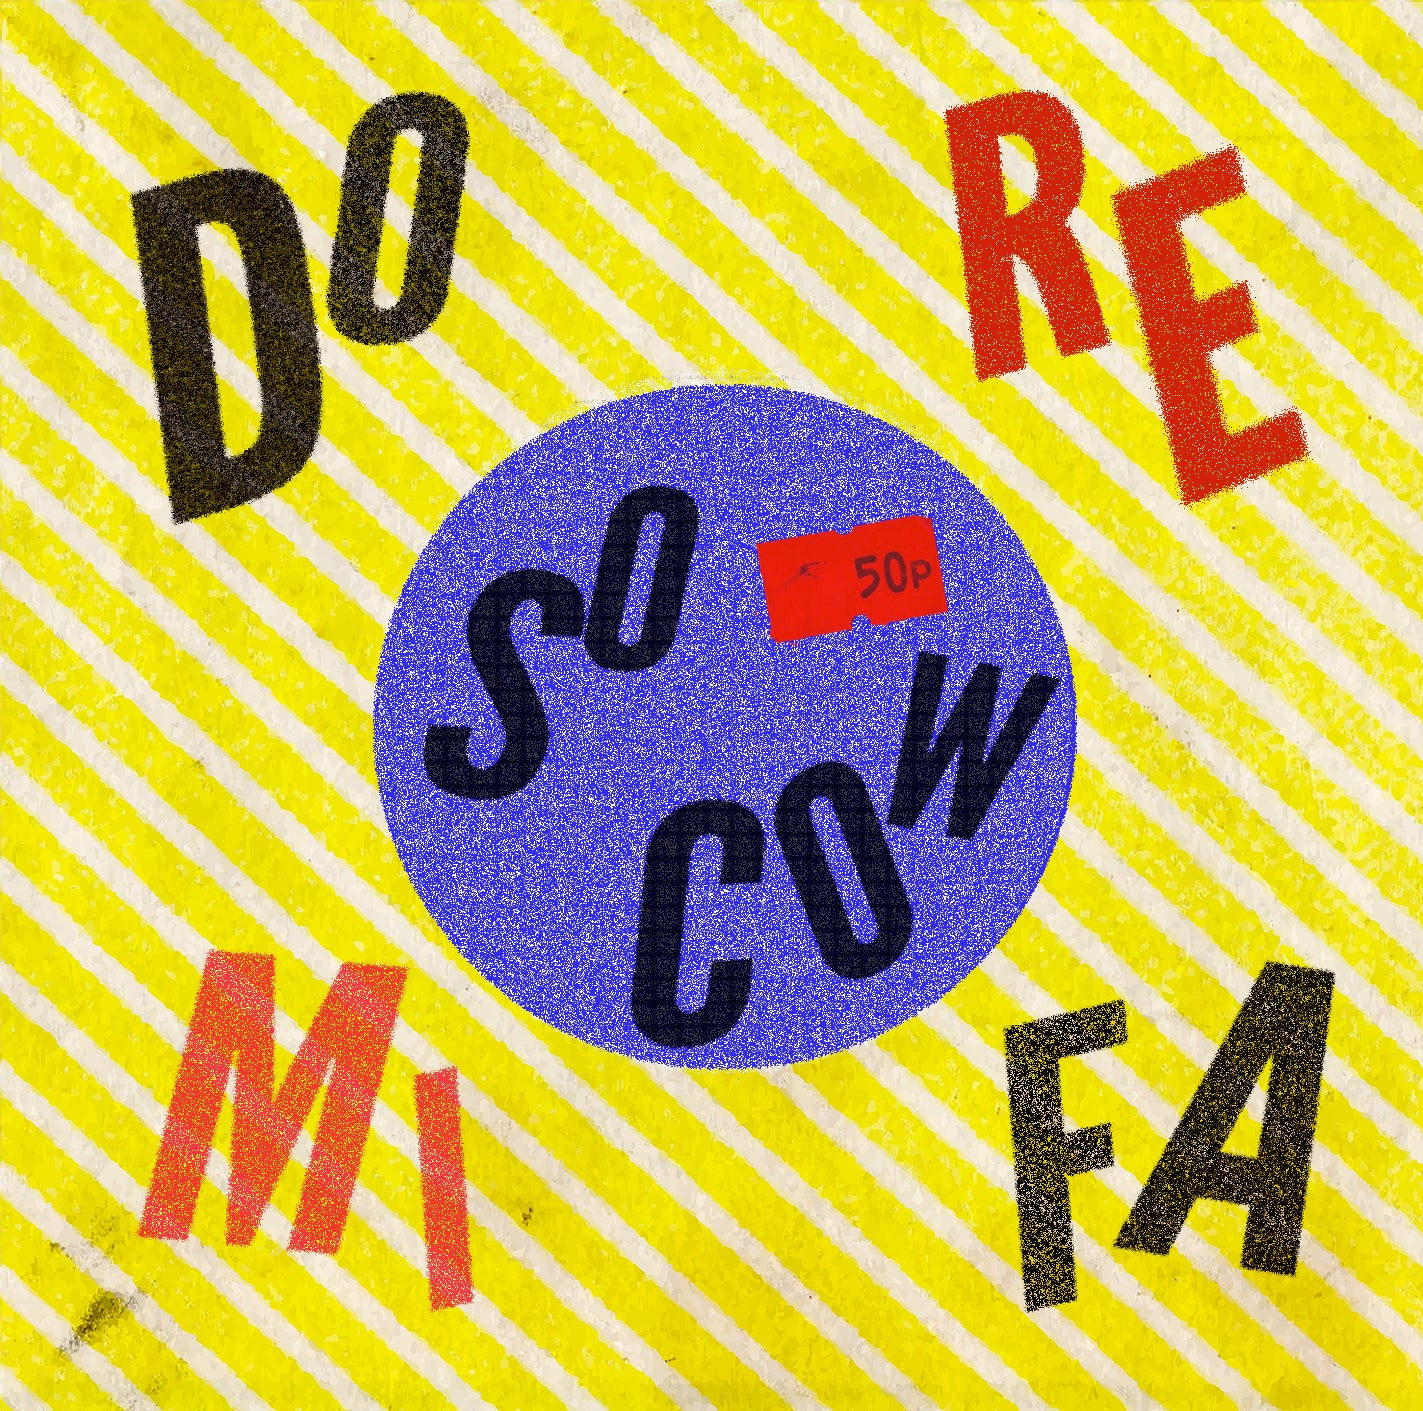 Do Re Mi Fa So Cow - CD